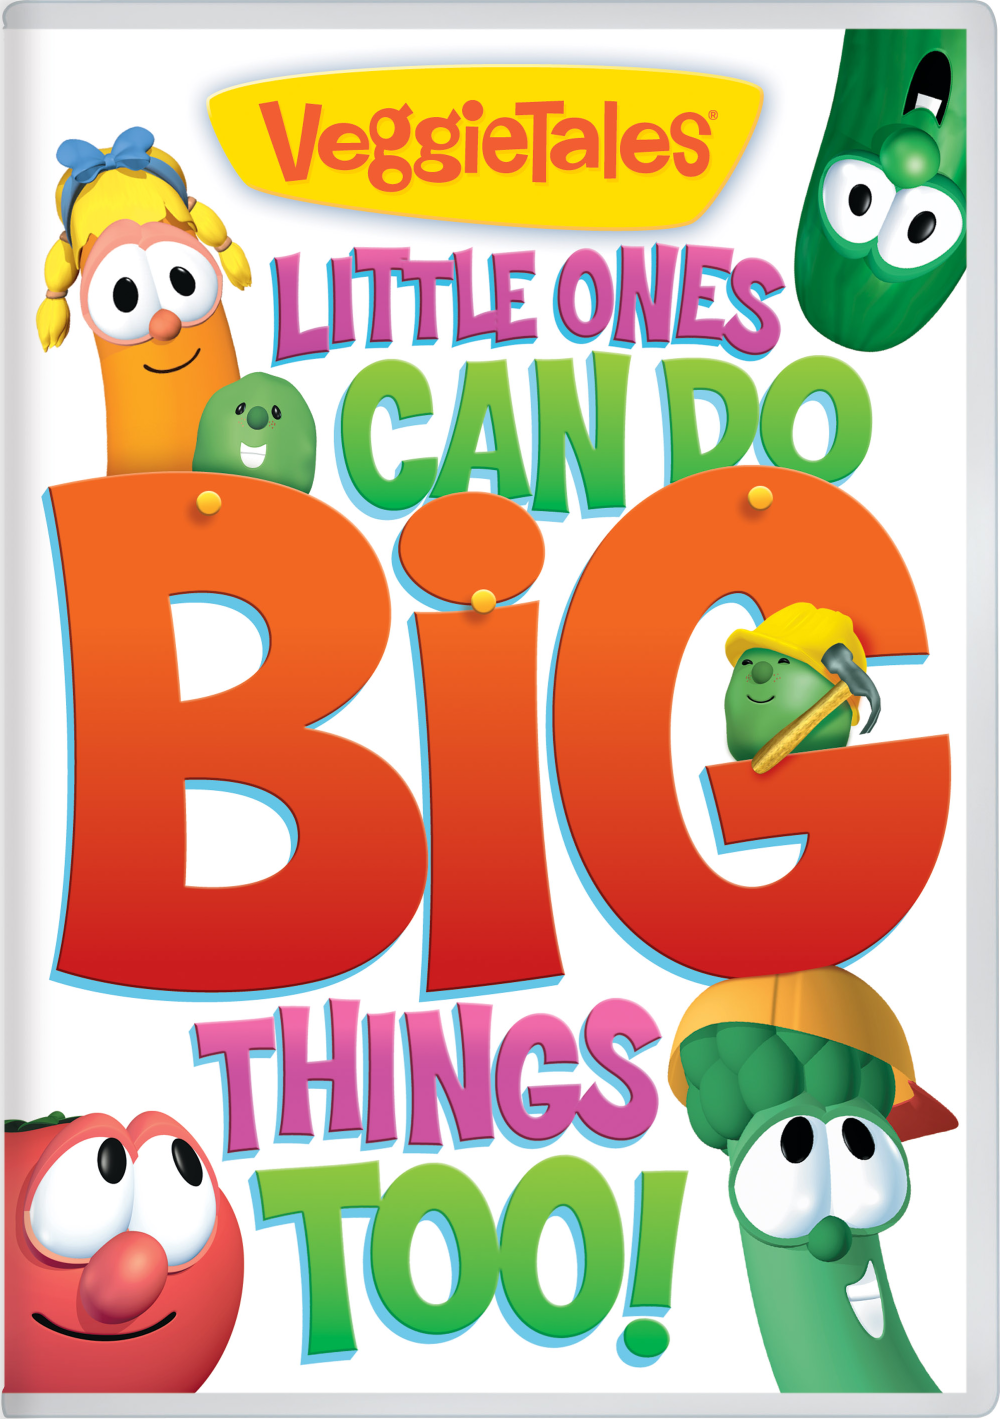 Little Ones Can Do Big Things Too!